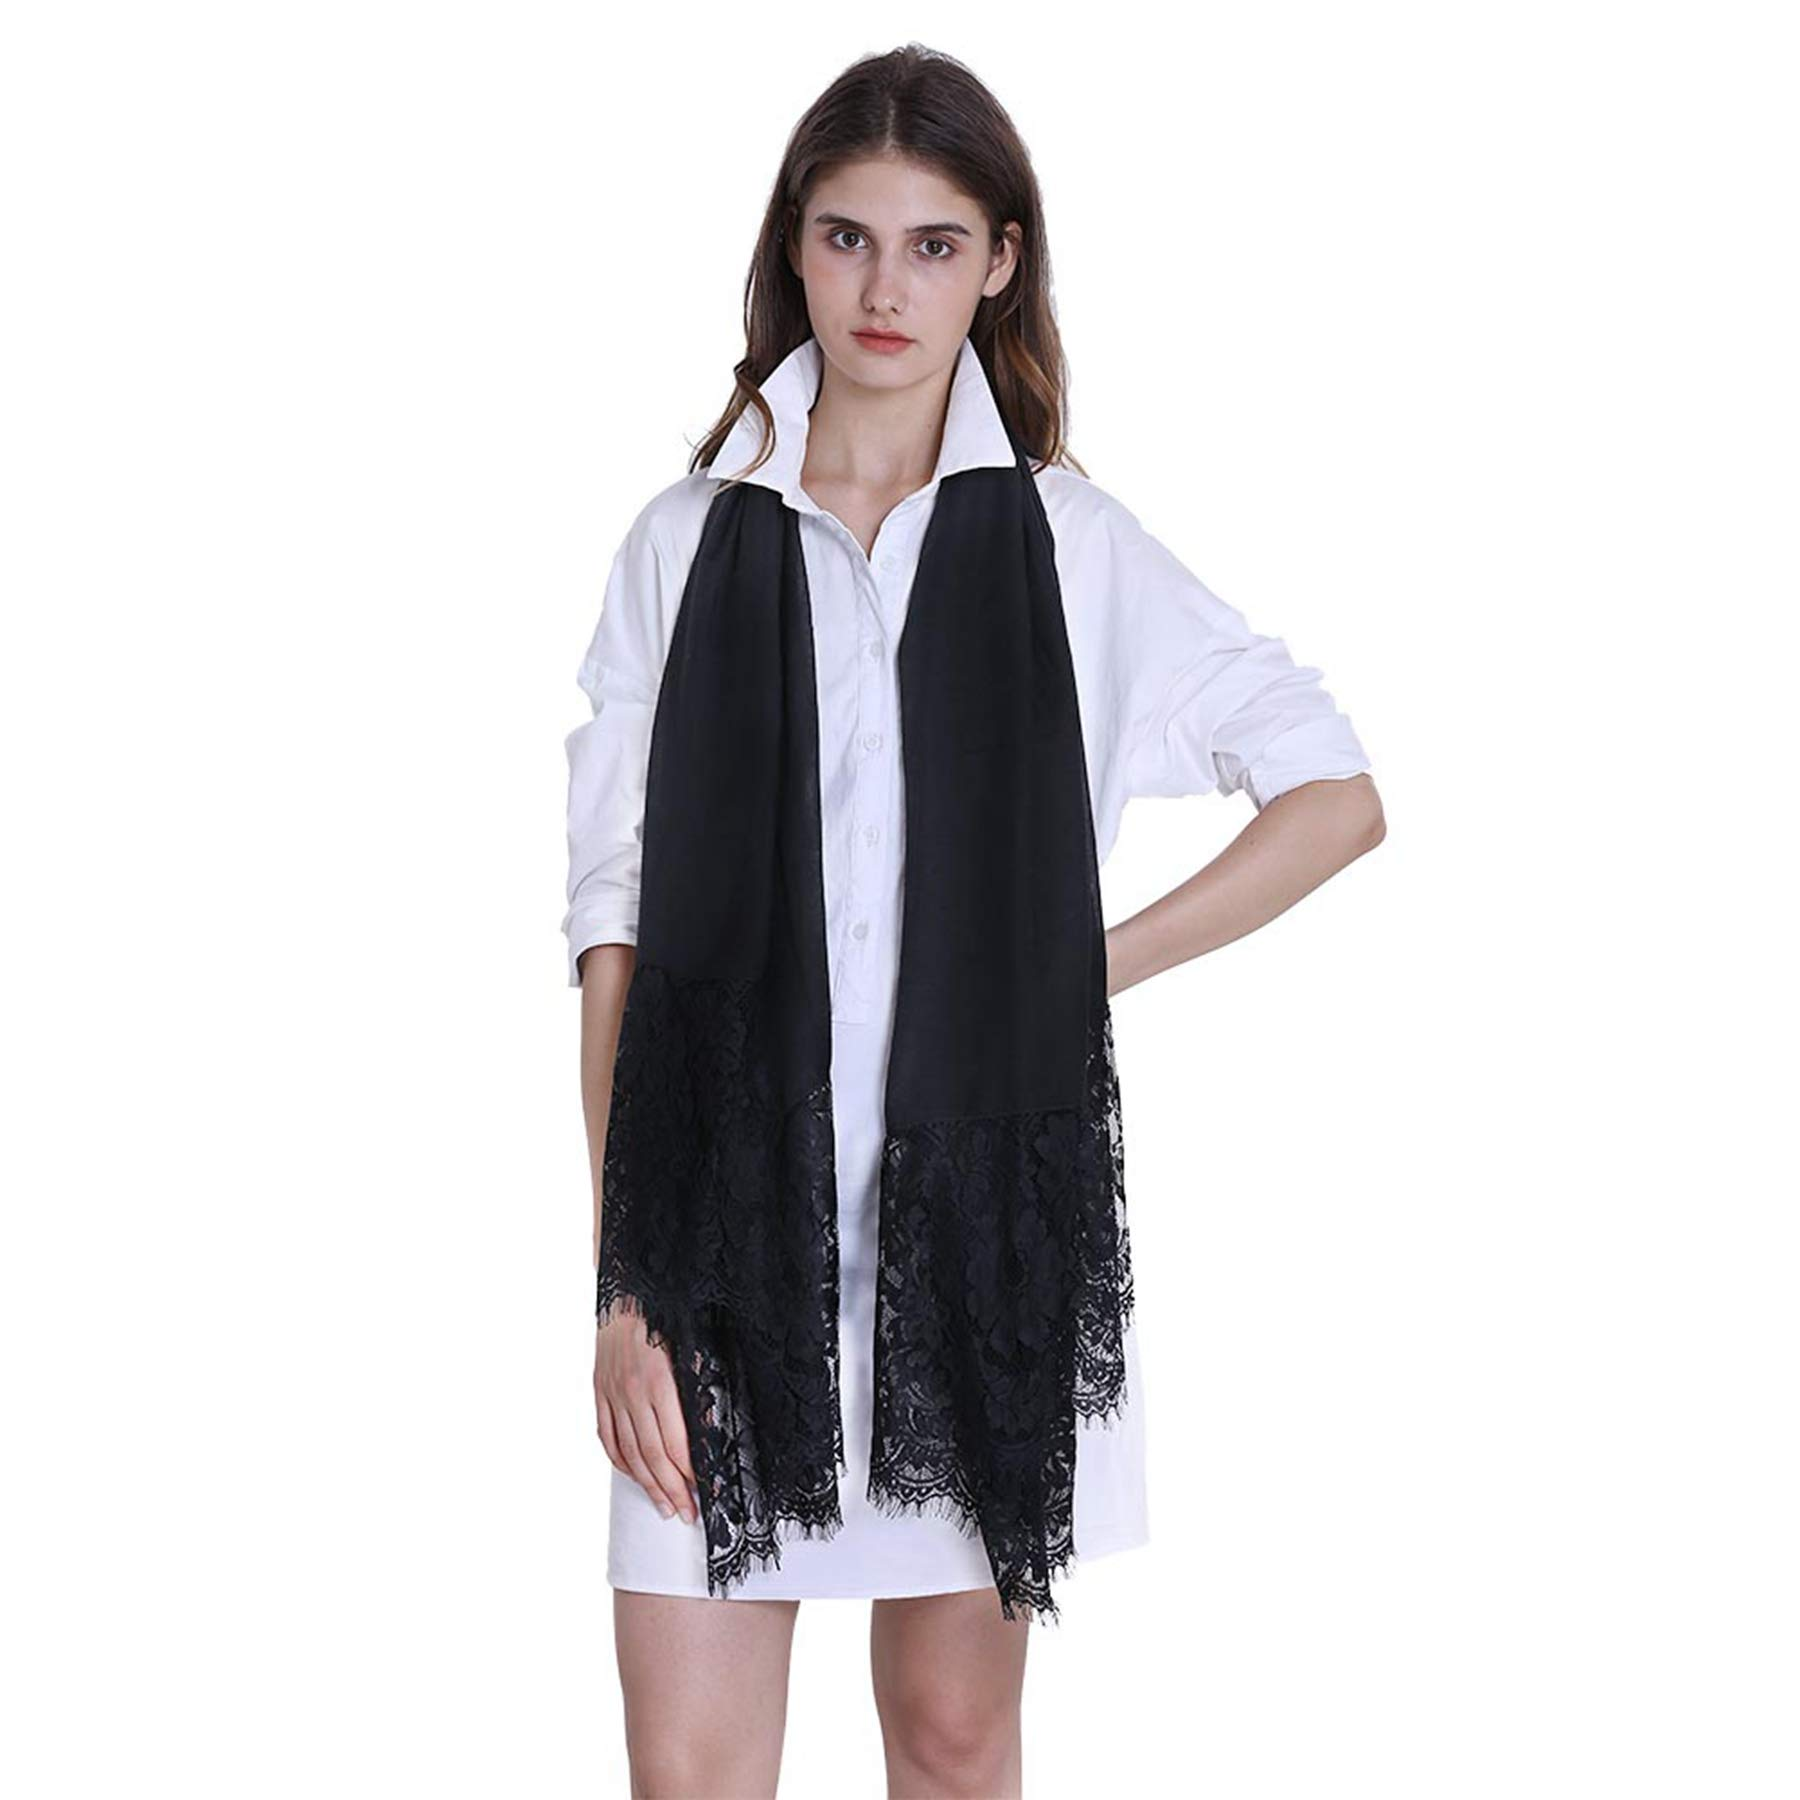 Women Fashion Scarf Wrap Shawl,RiscaWin Autumn Soft Lightweight Lace Scarves Wrap Warm Scarf(Black) by RiscaWin (Image #2)